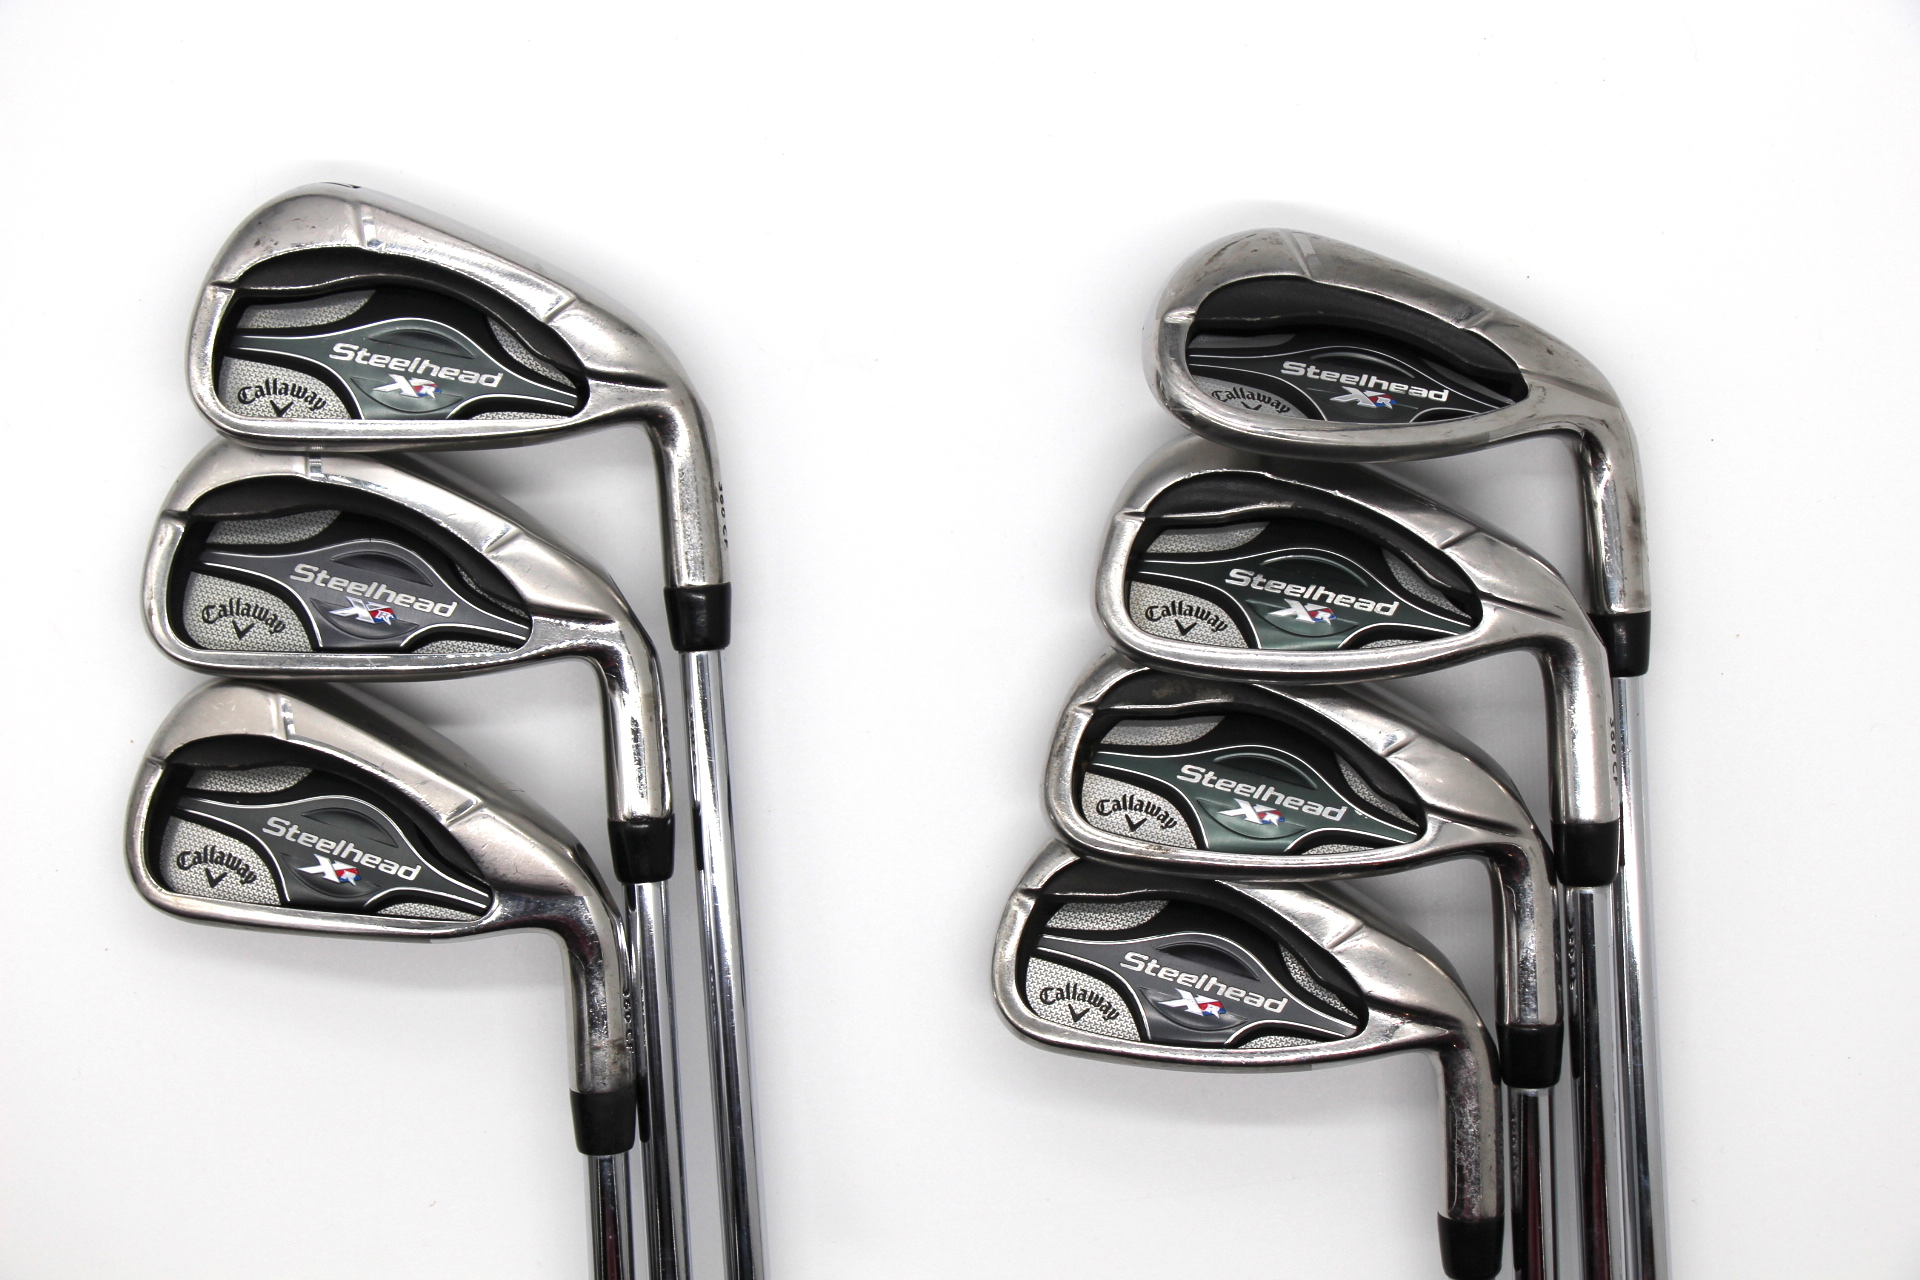 Callaway Steelhead XR Iron Set